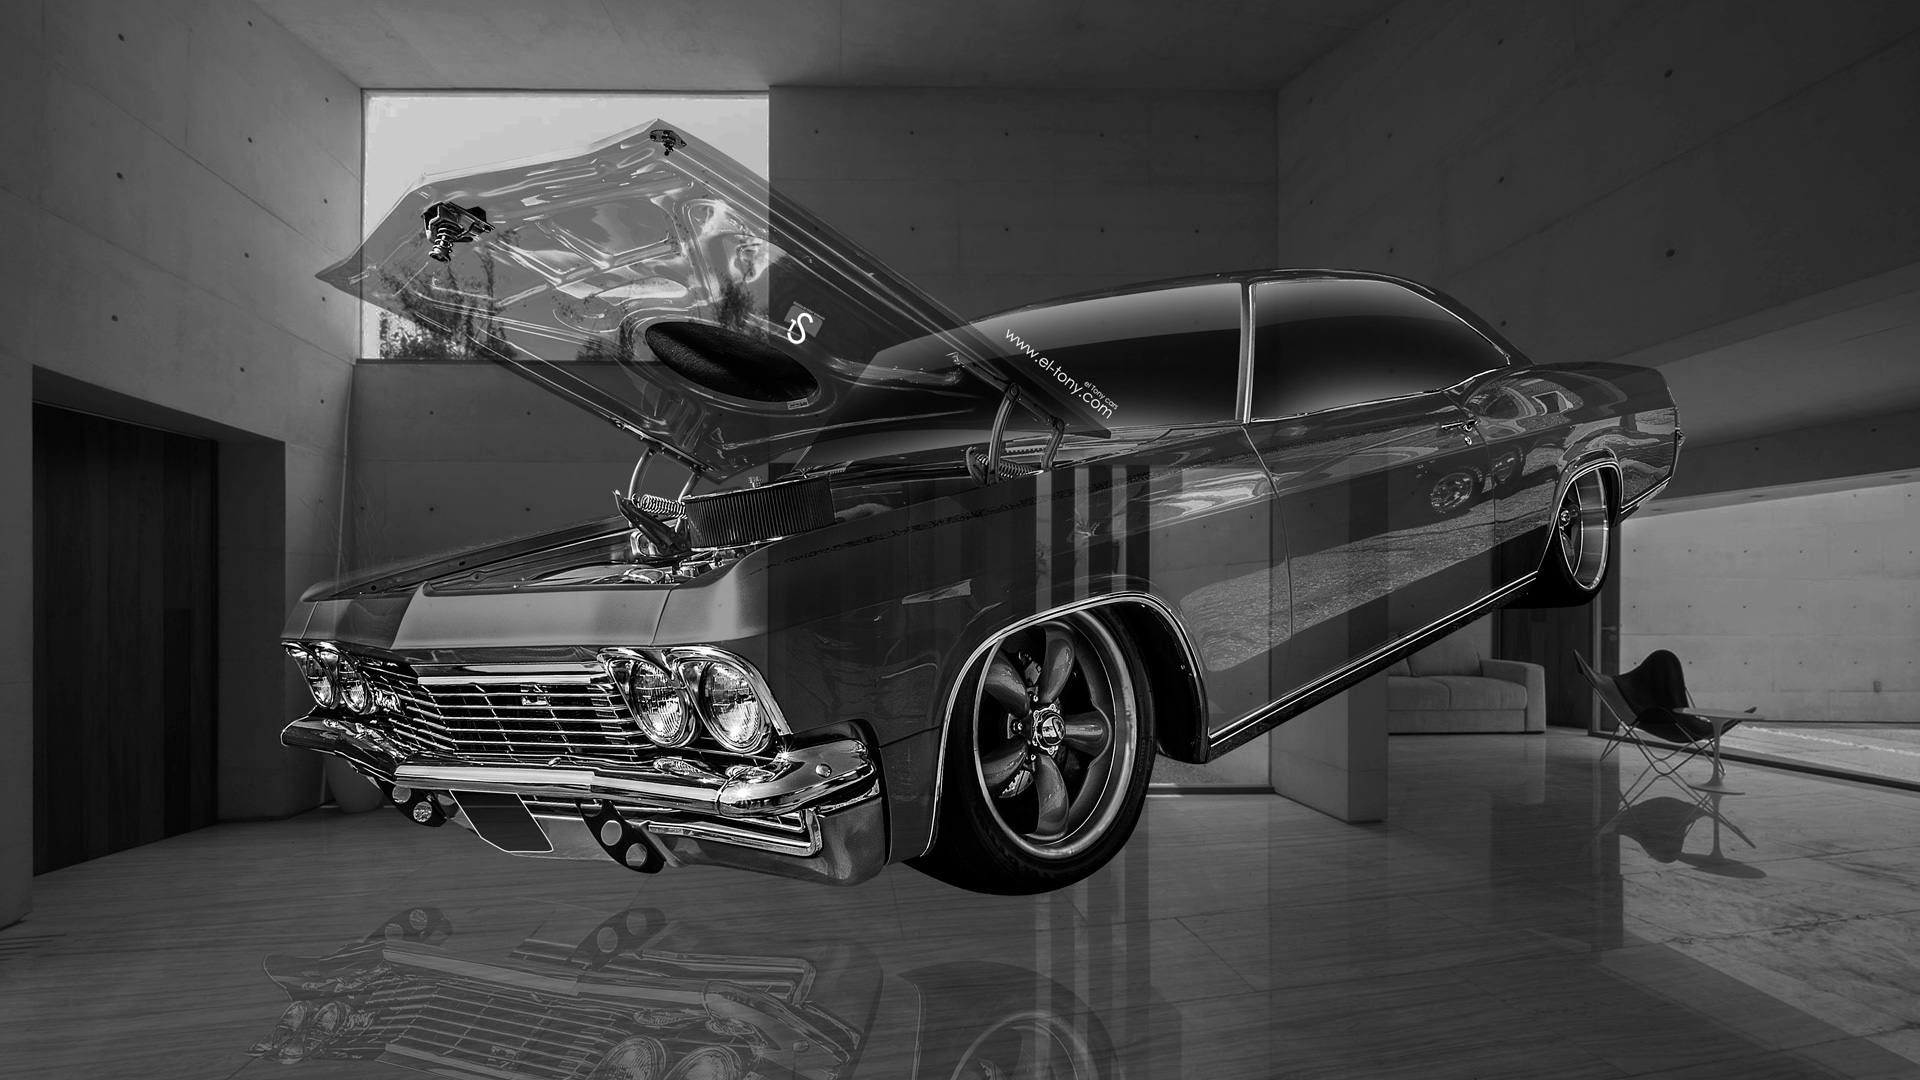 ... Chevrolet Biscayne 1965 Fantasy Crystal Home Fly Car 2014